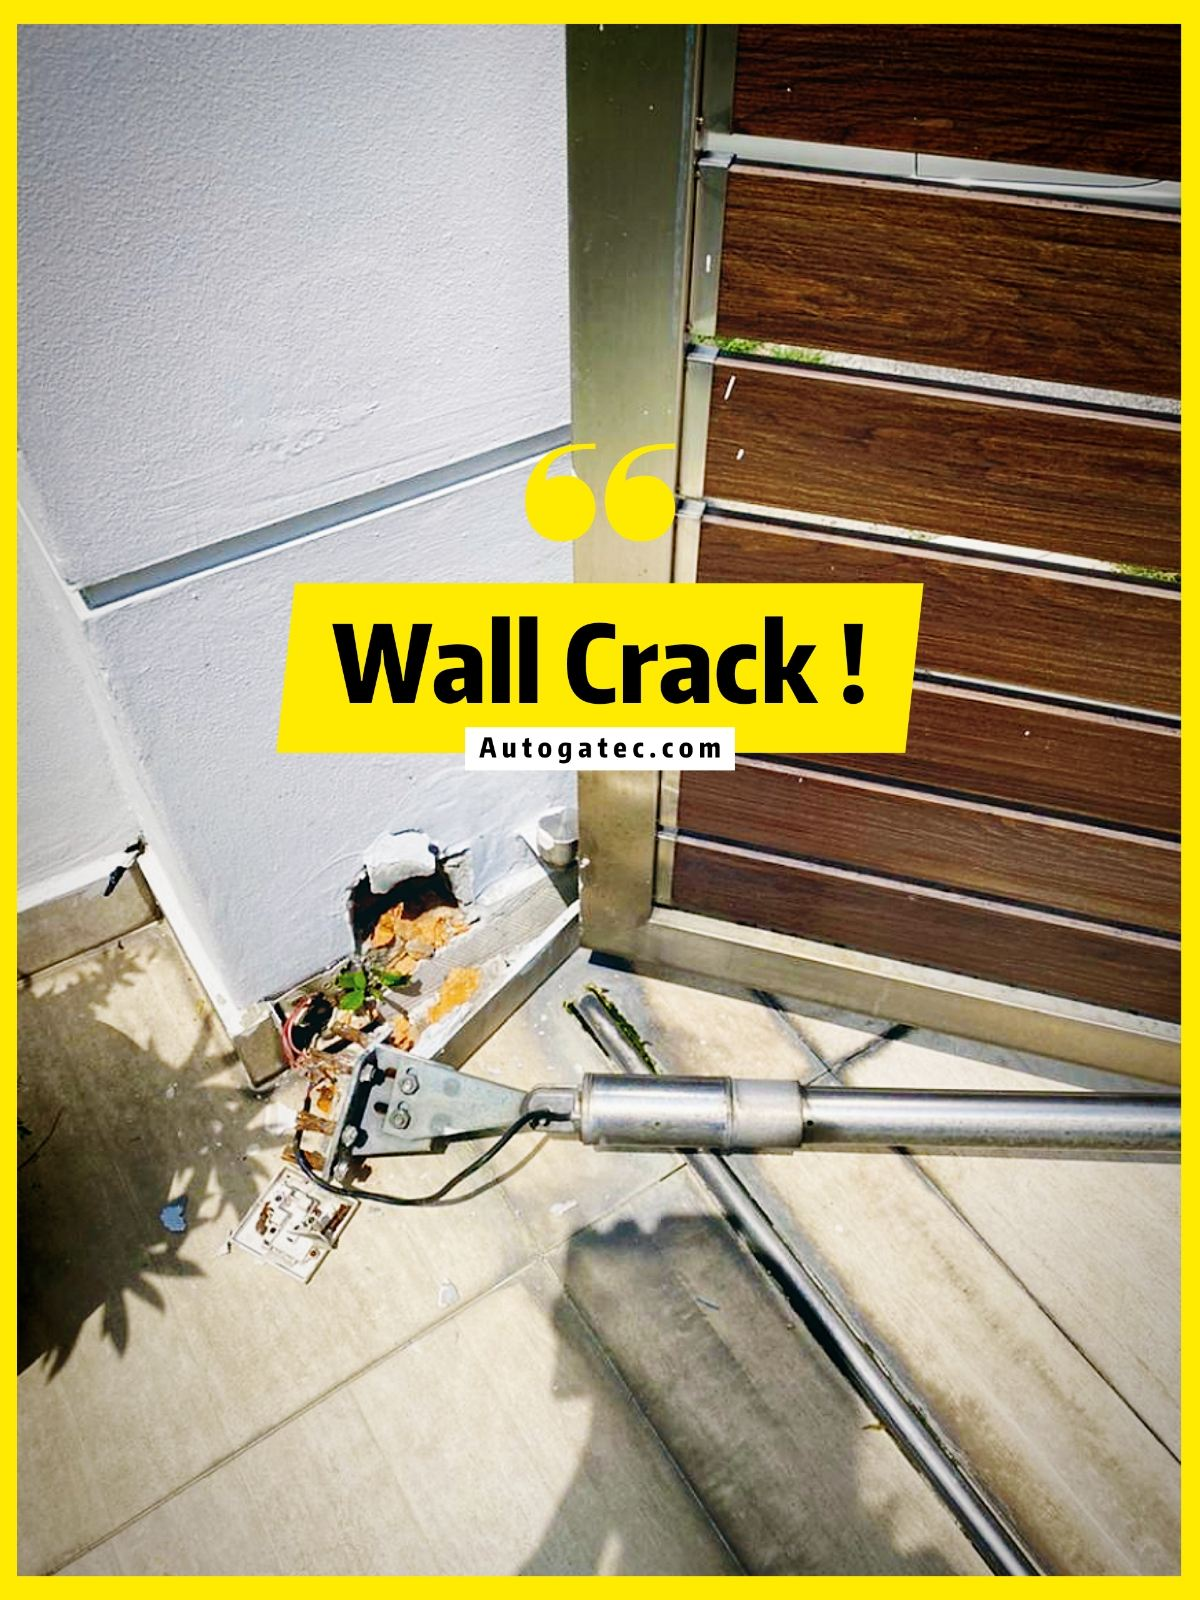 Wall Crack